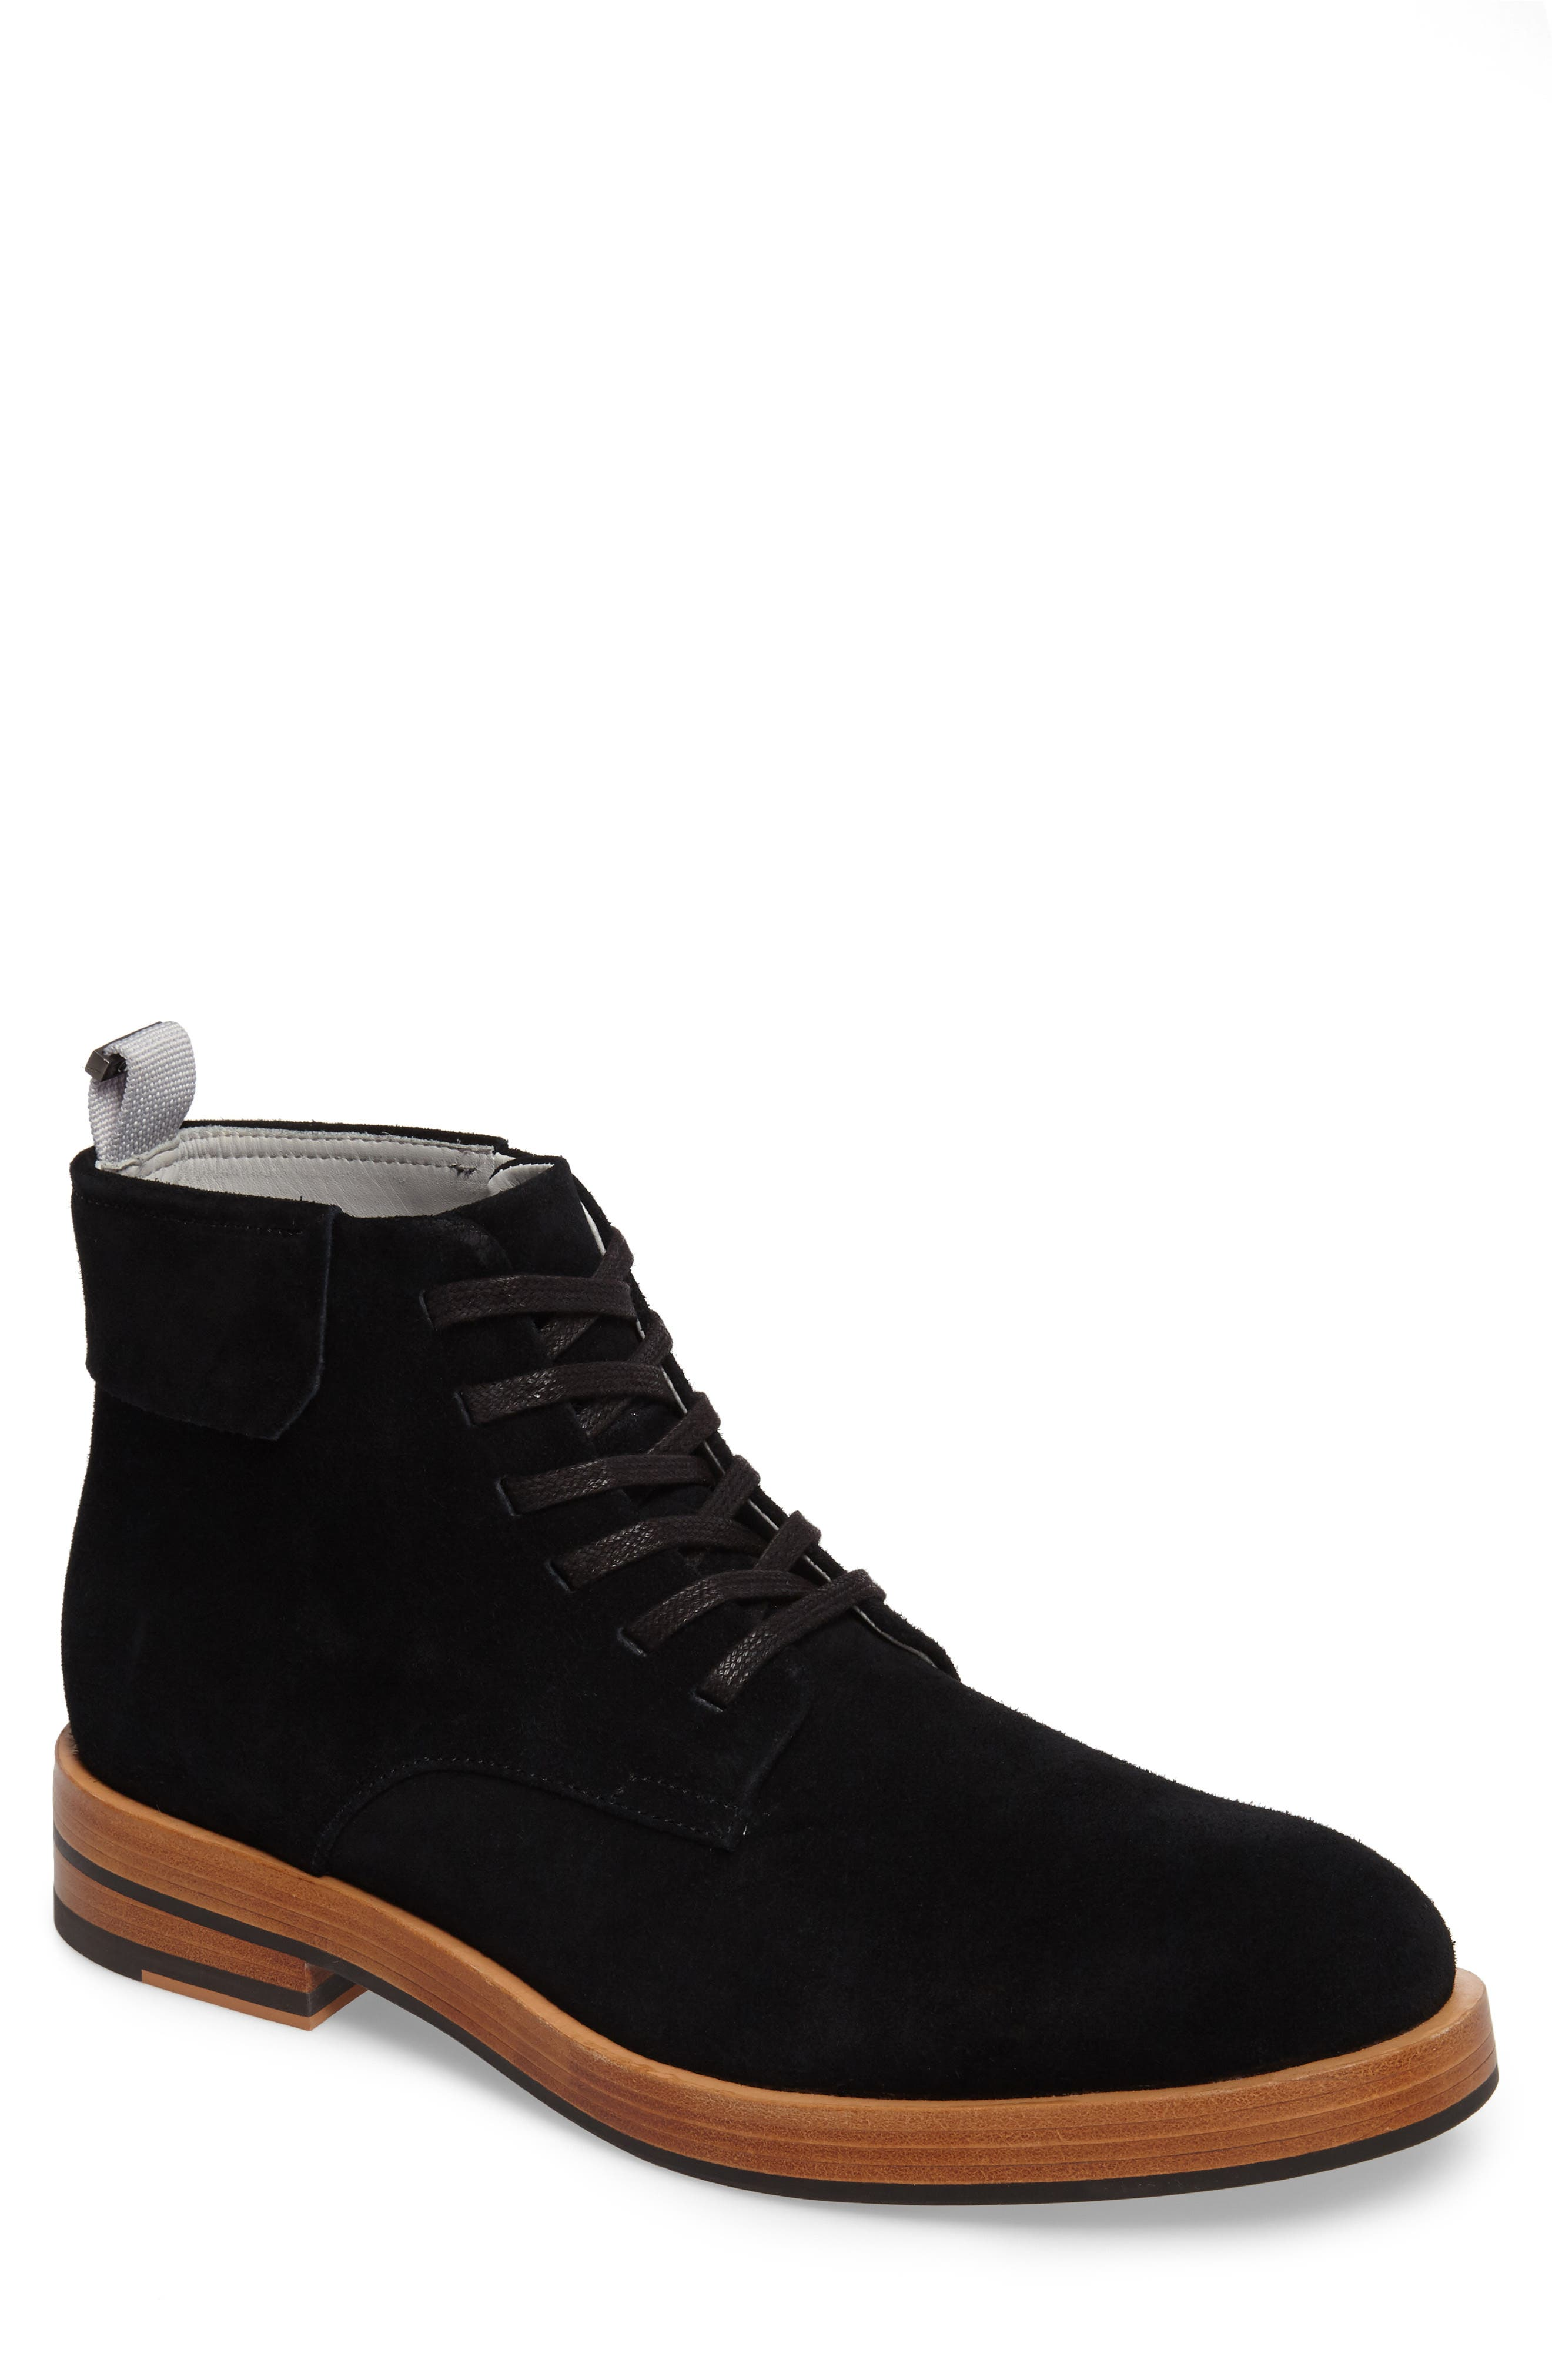 Alternate Image 1 Selected - Calvin Klein Radburn Plain Toe Boot (Men)